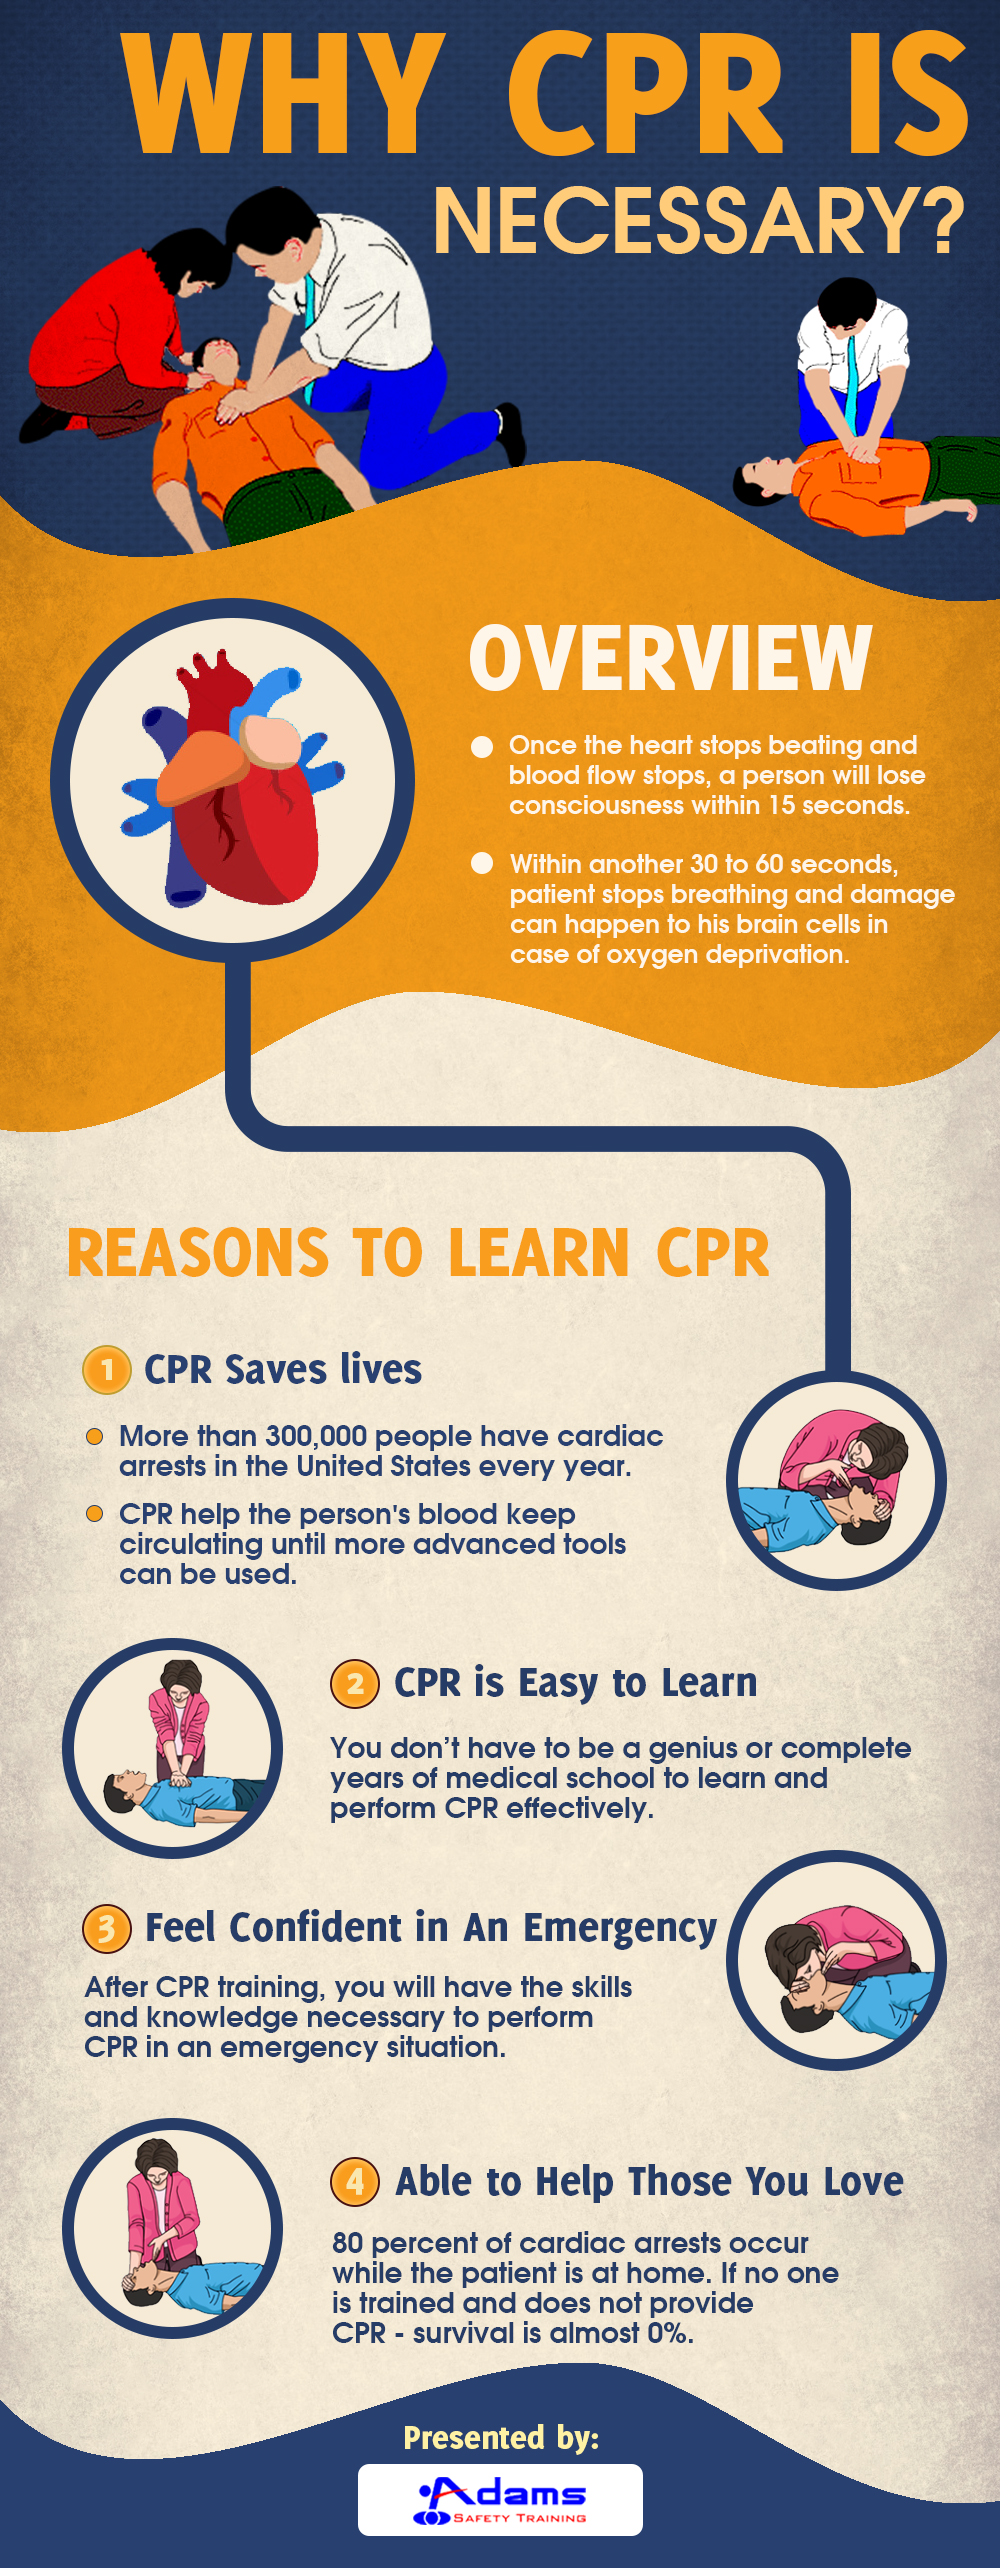 Why CPR is necessary